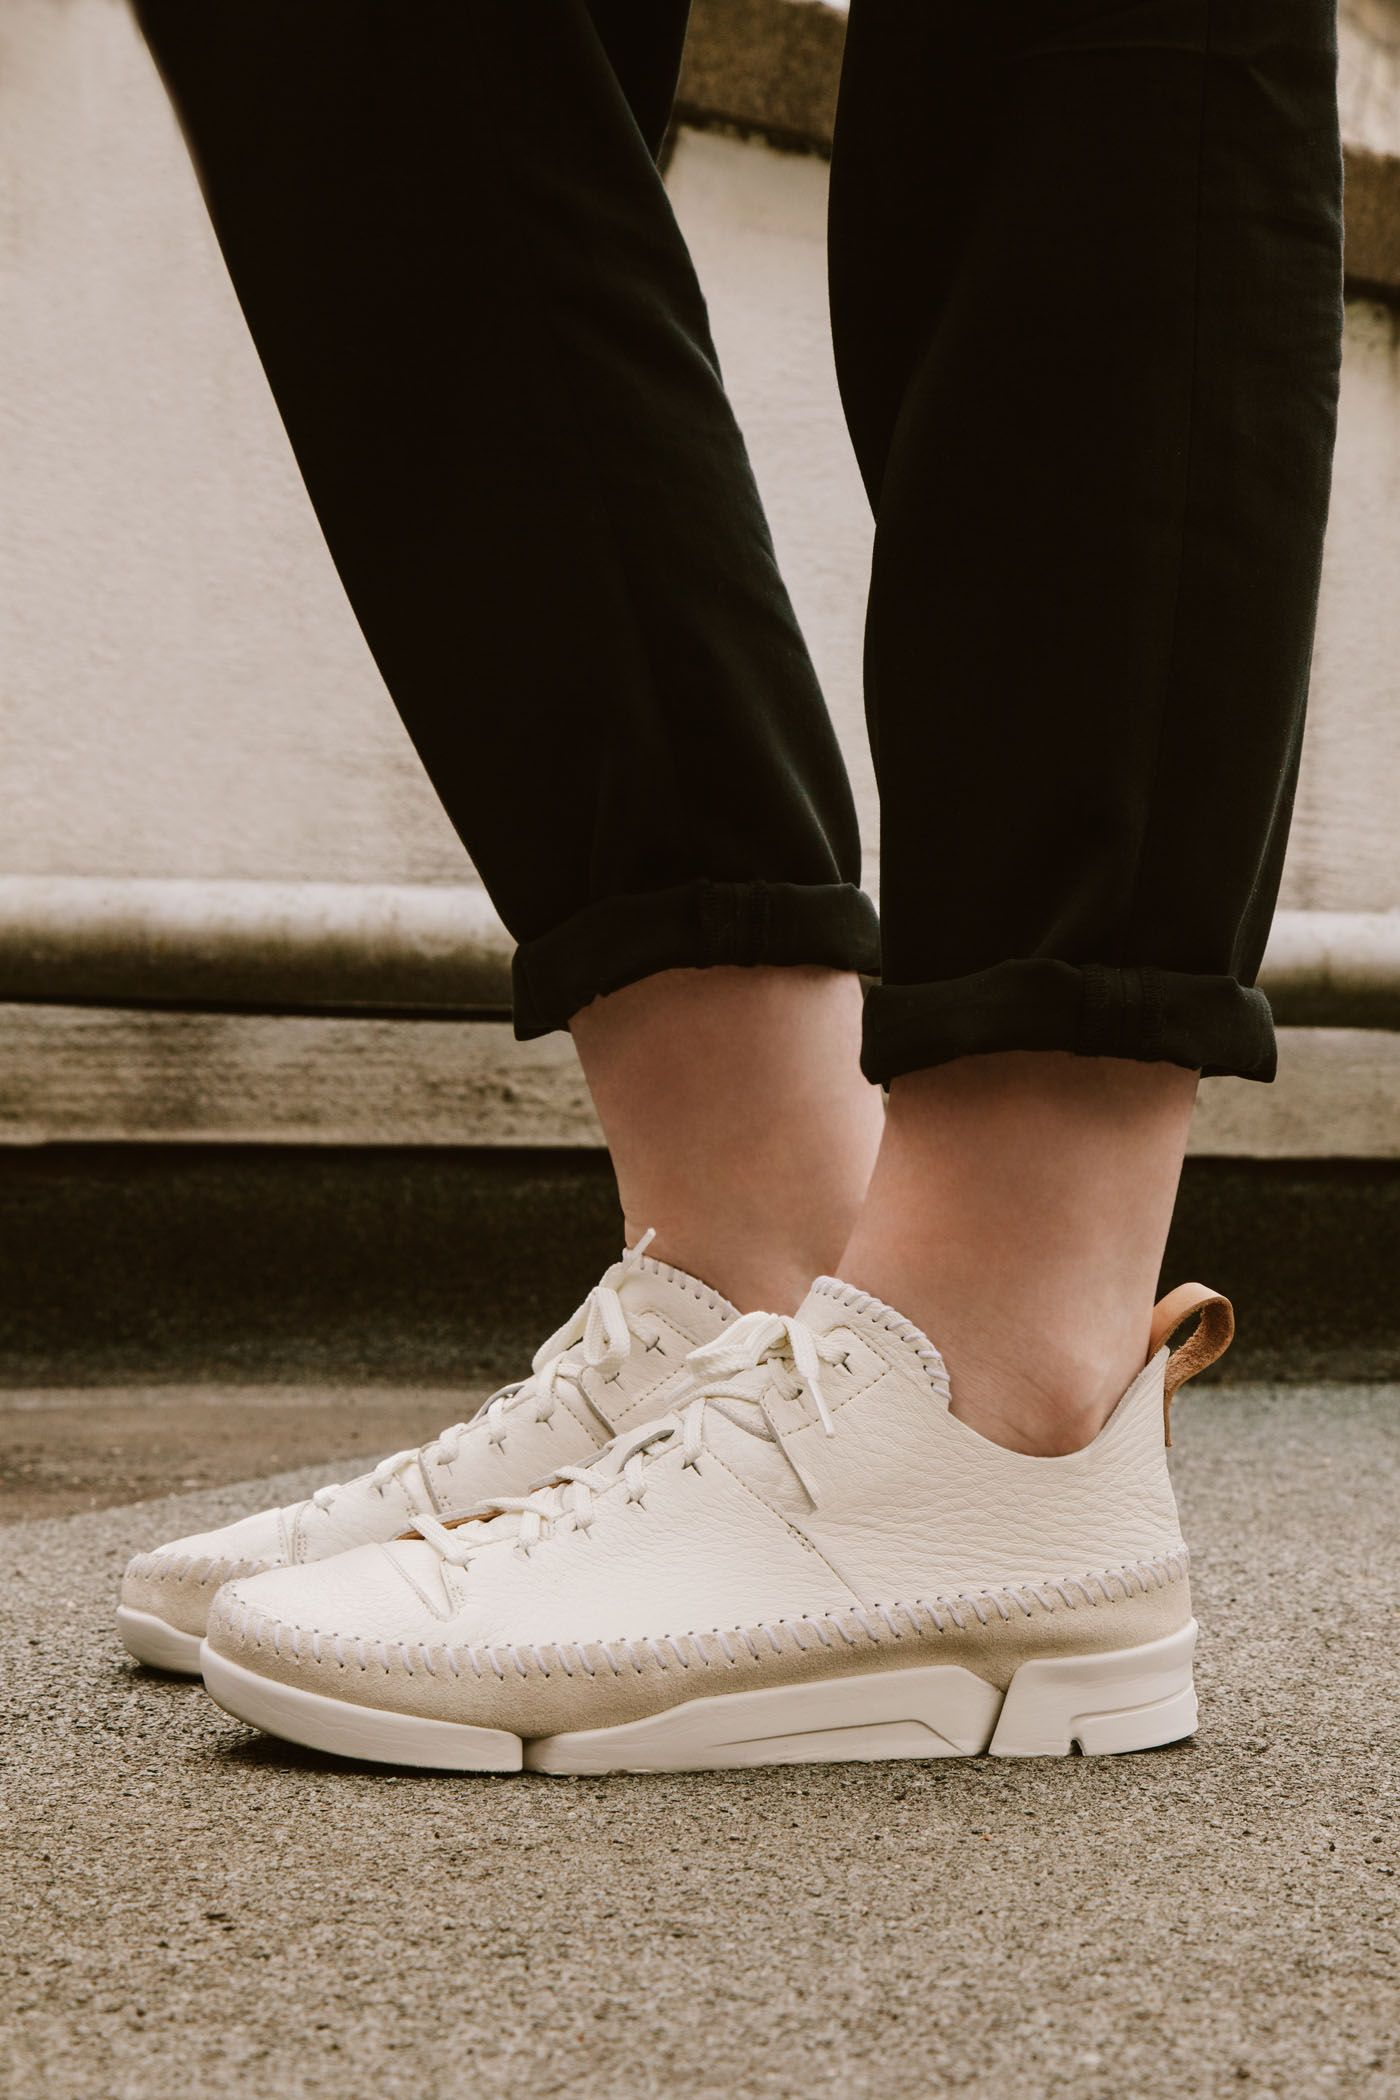 90bdc88edc5 Trigenic Flex in white nubuck #ClarksOriginals #Womens #Clarks #SS15  #Trigenic #ClarksTrigenic #Sportwear #SportsLuxe #Shoes